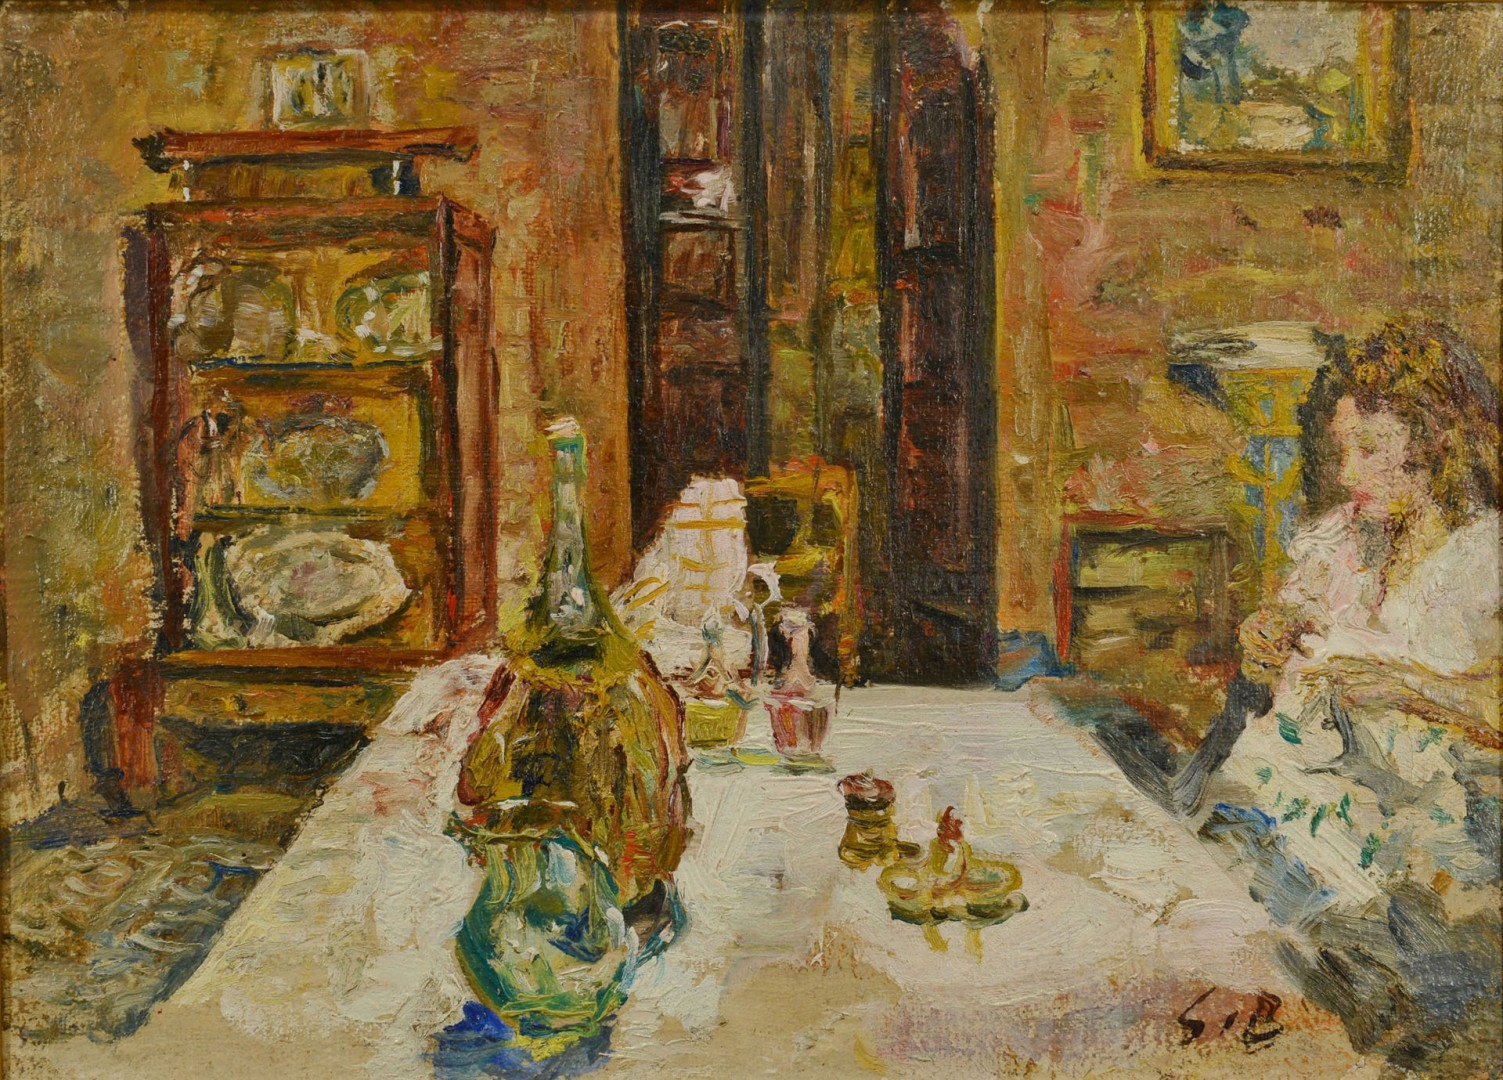 Lot 37: Guido Borgianni, o/c, Interior Scene, 1946